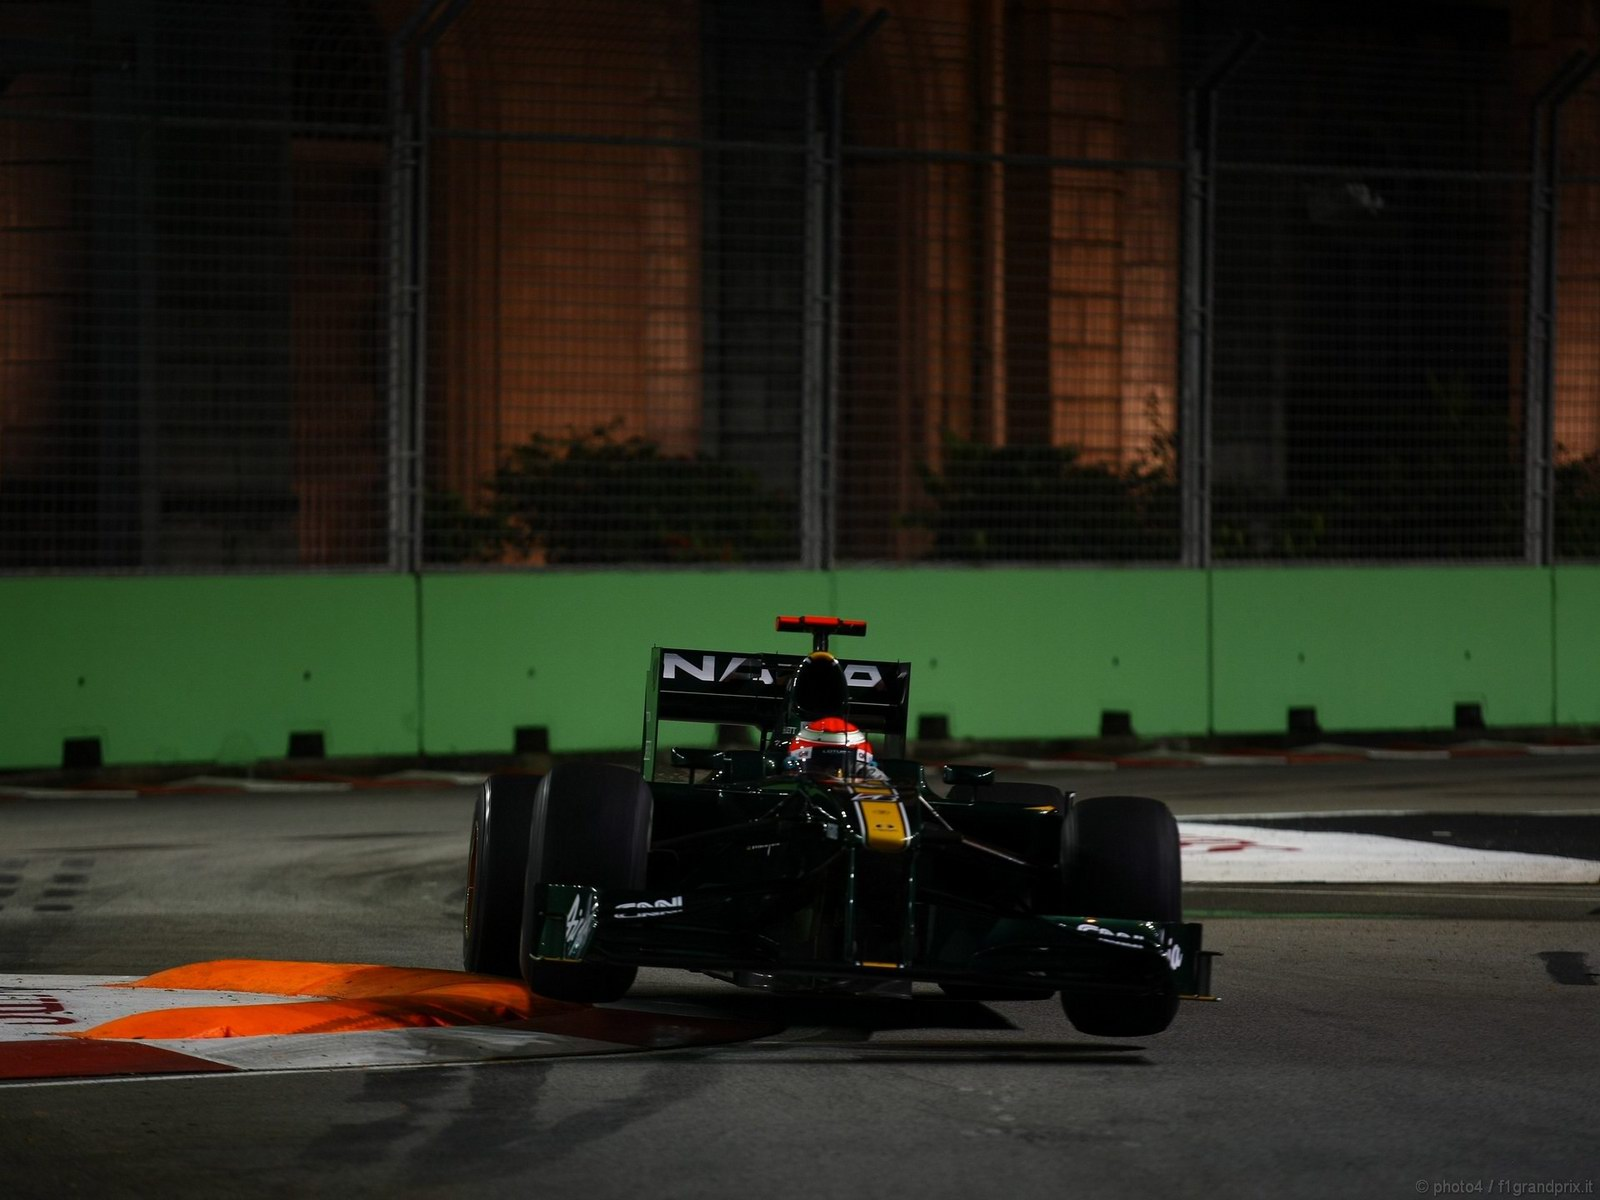 pojazdy - formula1 - gp_singapore_wallpapers_000078